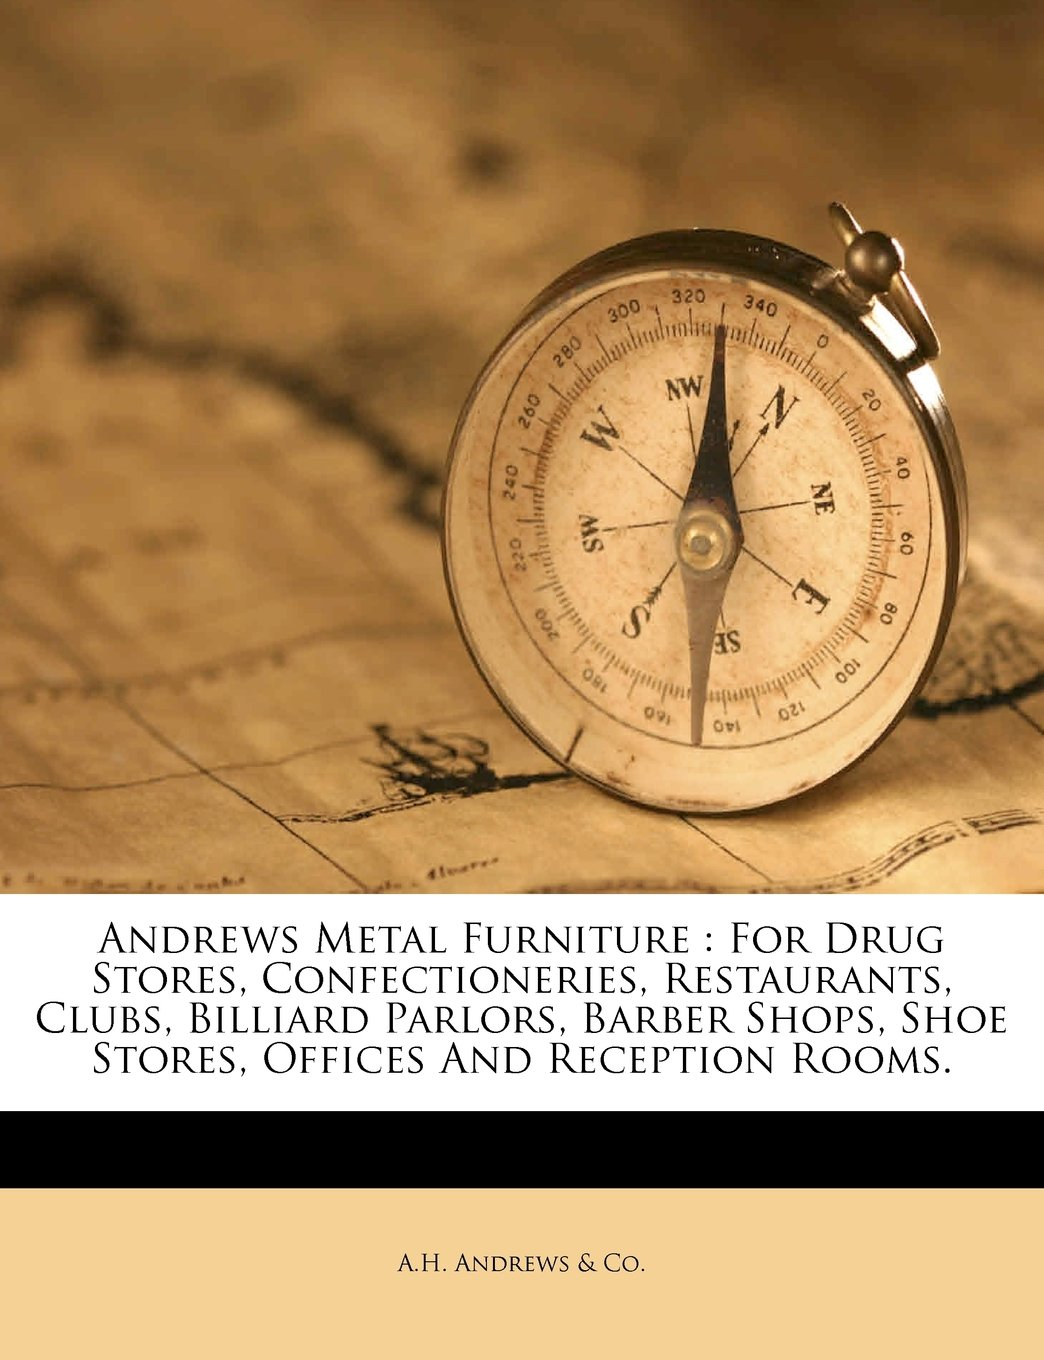 Download Andrews Metal Furniture: For Drug Stores, Confectioneries, Restaurants, Clubs, Billiard Parlors, Barber Shops, Shoe Stores, Offices And Reception Rooms. pdf epub